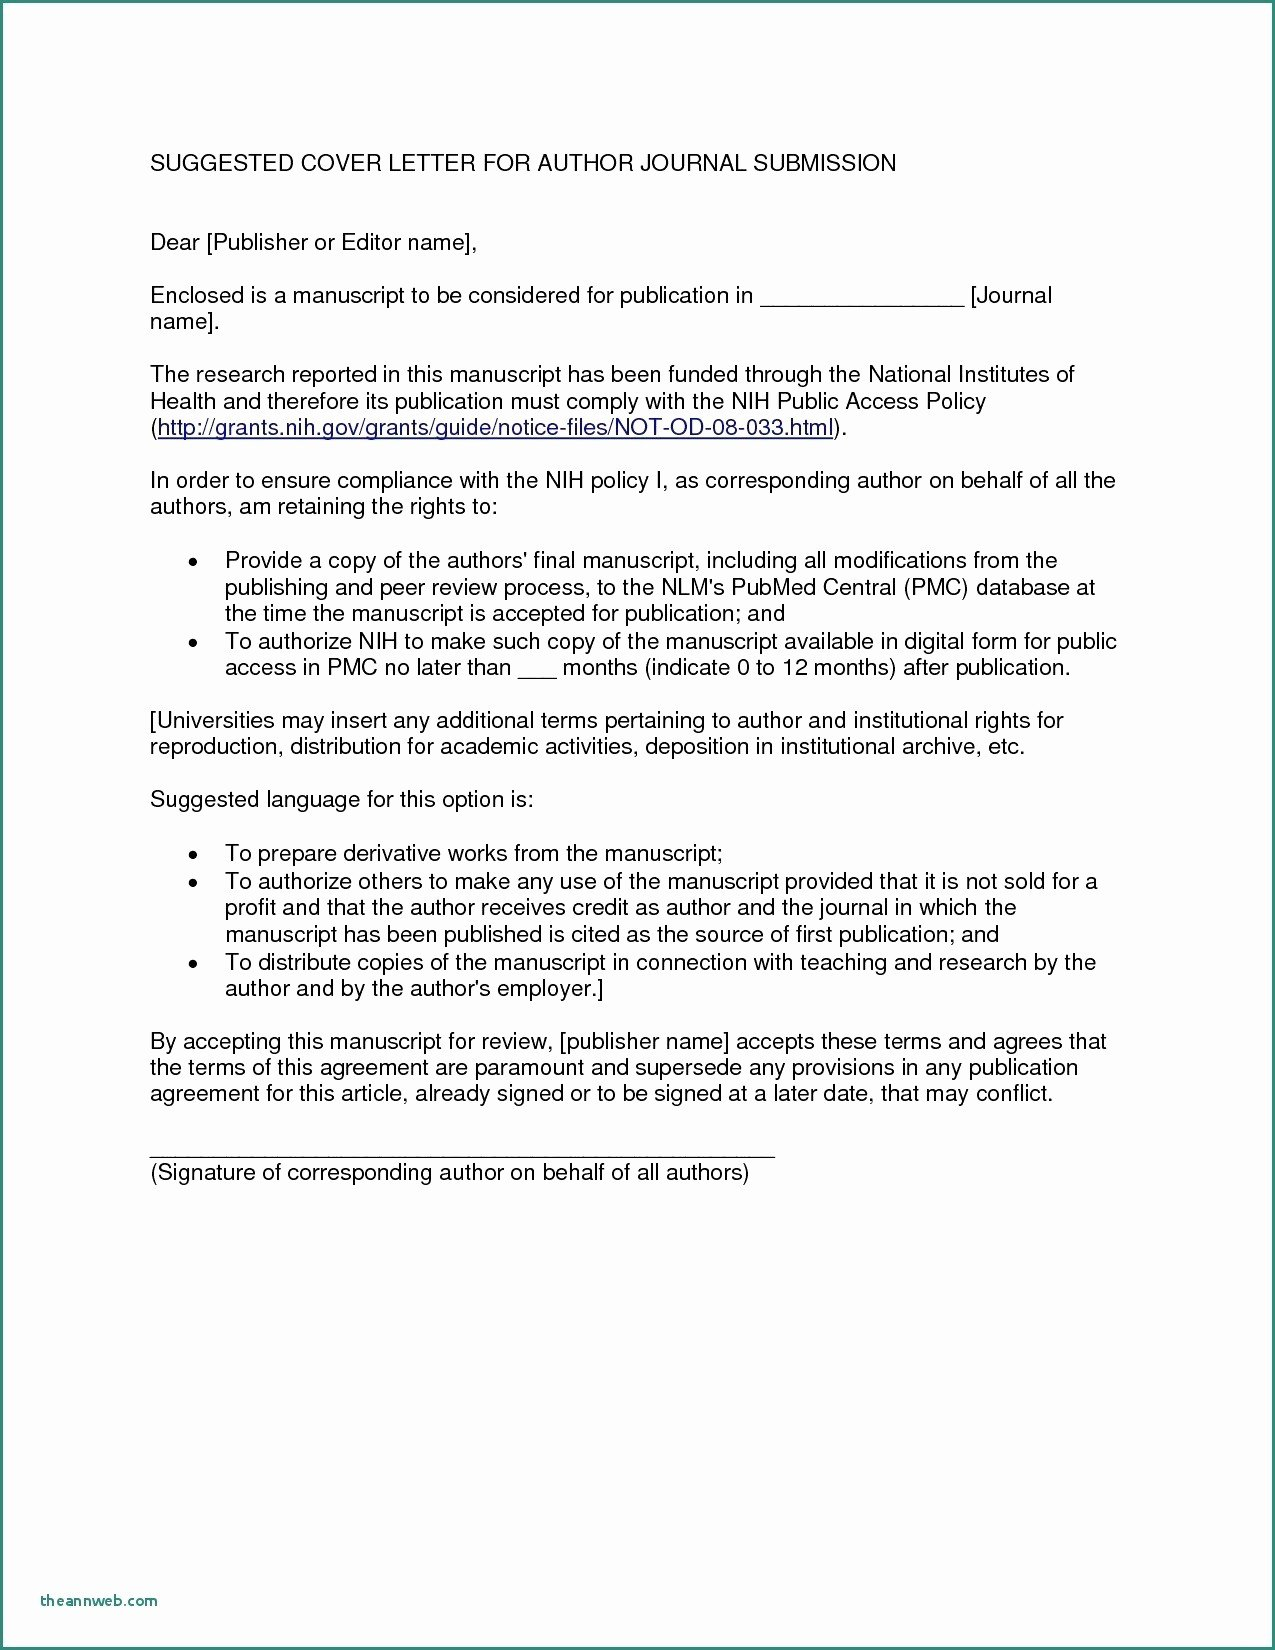 Letter Of Resignation Template Word 2007 Lovely New How to Create A Letter Template In Word 2007